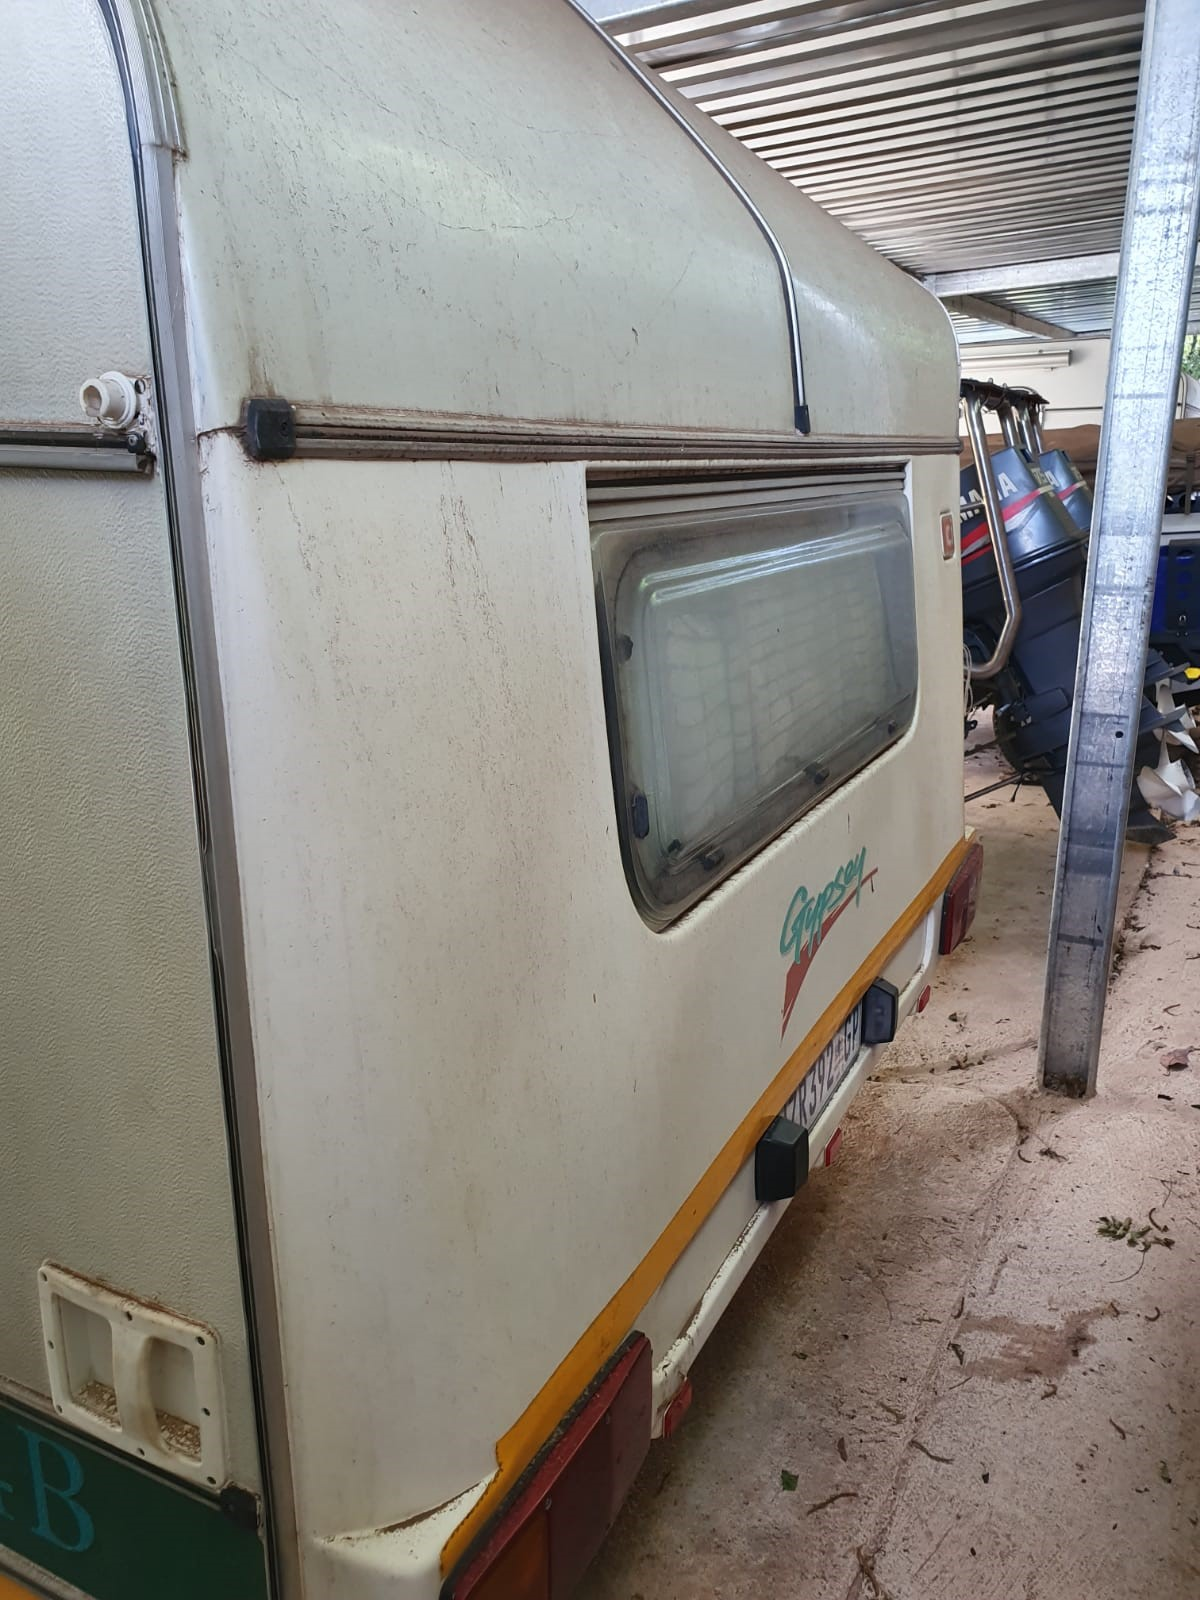 Gypsy 4B in very good condition